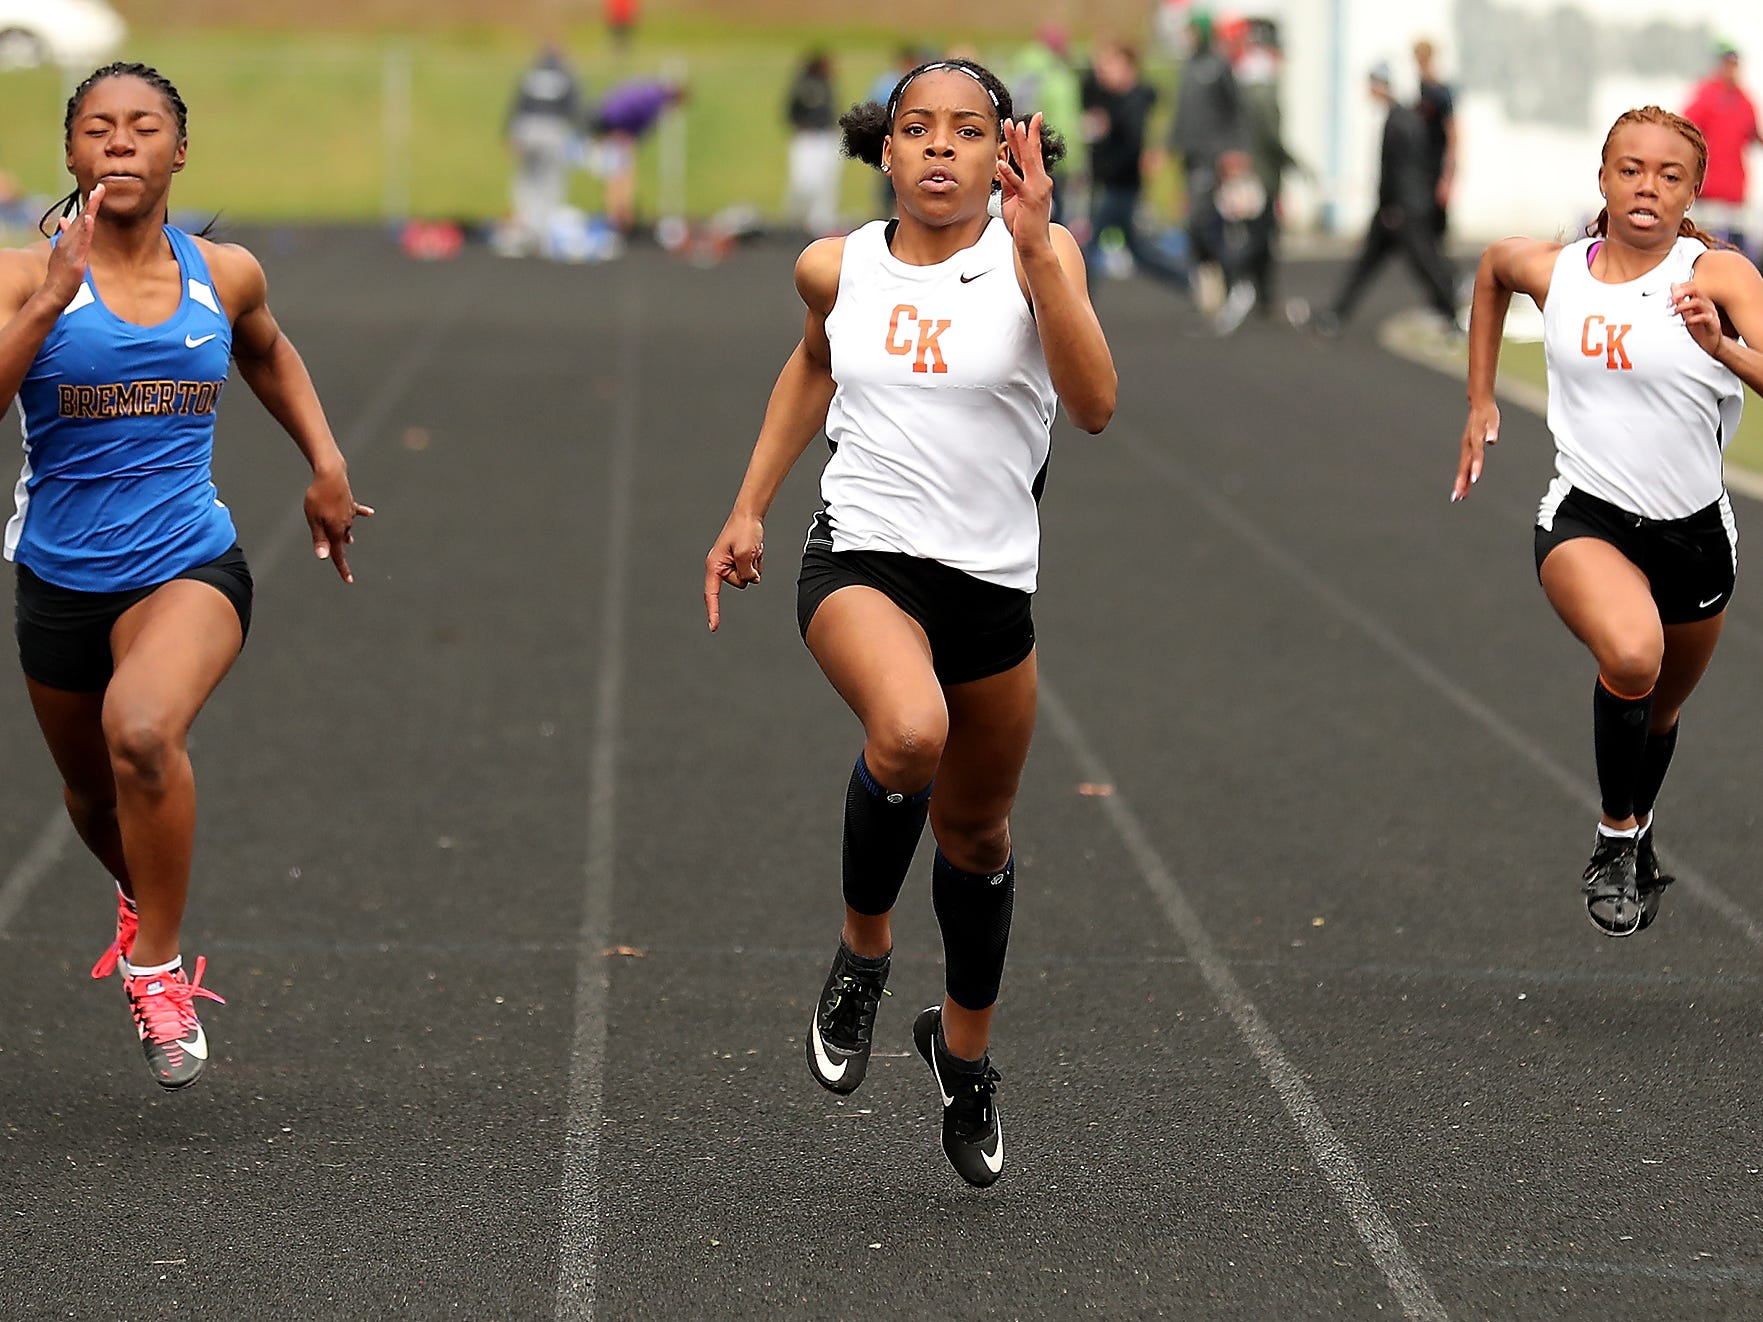 Central Kitsap's Kymeal Gaulden (center) sprints for a first place finish in the 100 Meter Dash ahead of Bremerton's T'Caela Wilcher (left) and Central Kitsap's A'Naiyah Davis (right) during the Lil' Norway Invitational at North Kitsap High School in Poulsbo on Saturday, April13, 2019.